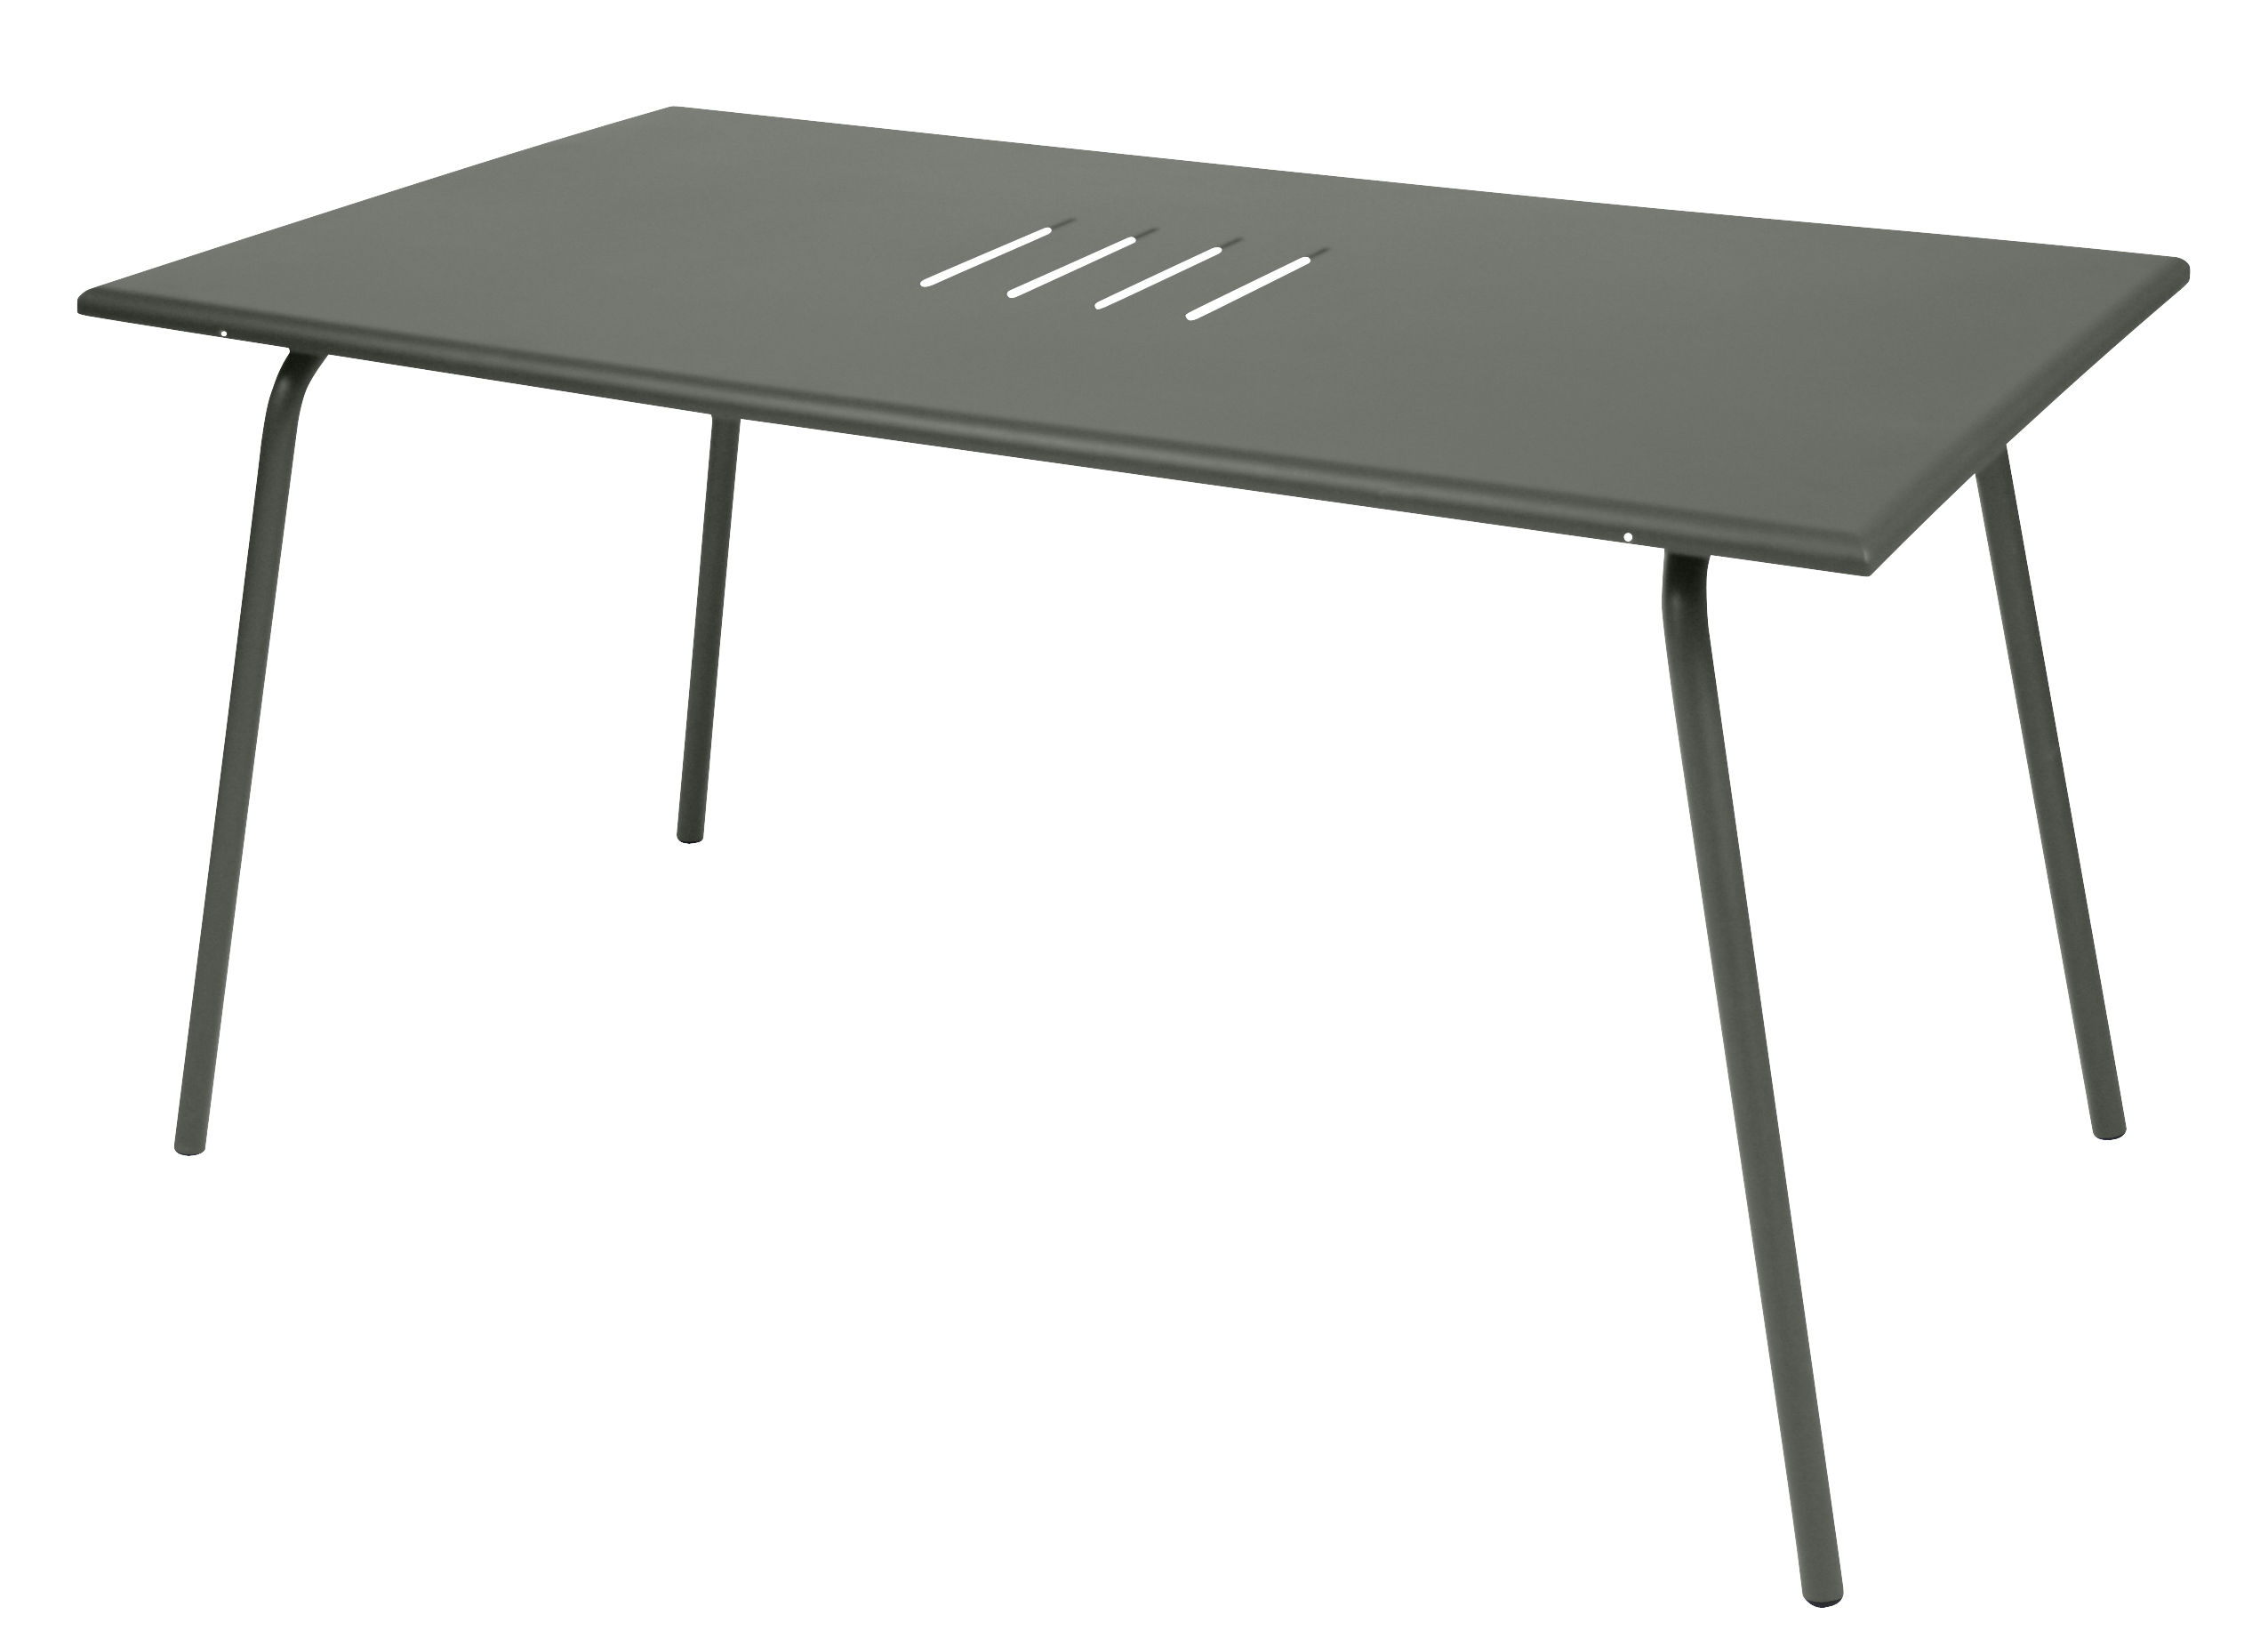 monceau table 146 x 80 cm 6 people rosemary by fermob. Black Bedroom Furniture Sets. Home Design Ideas